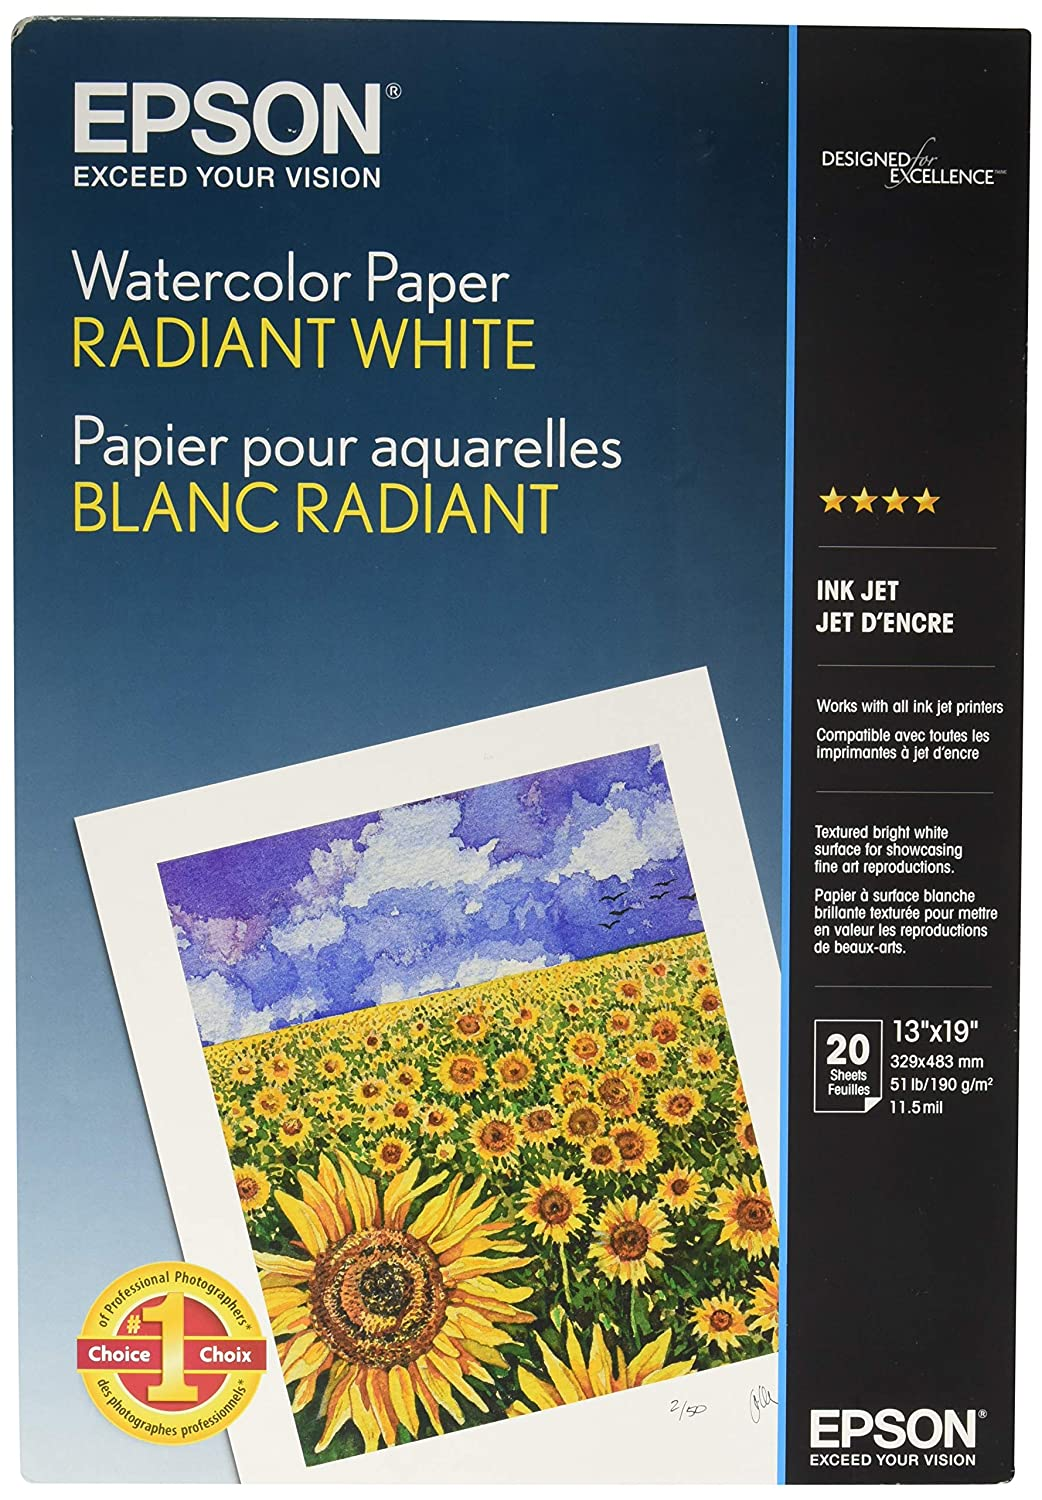 20sht 13x19 Watercolor Radiant White Paper Epson - Supplies Paper S041351 Office Supplies